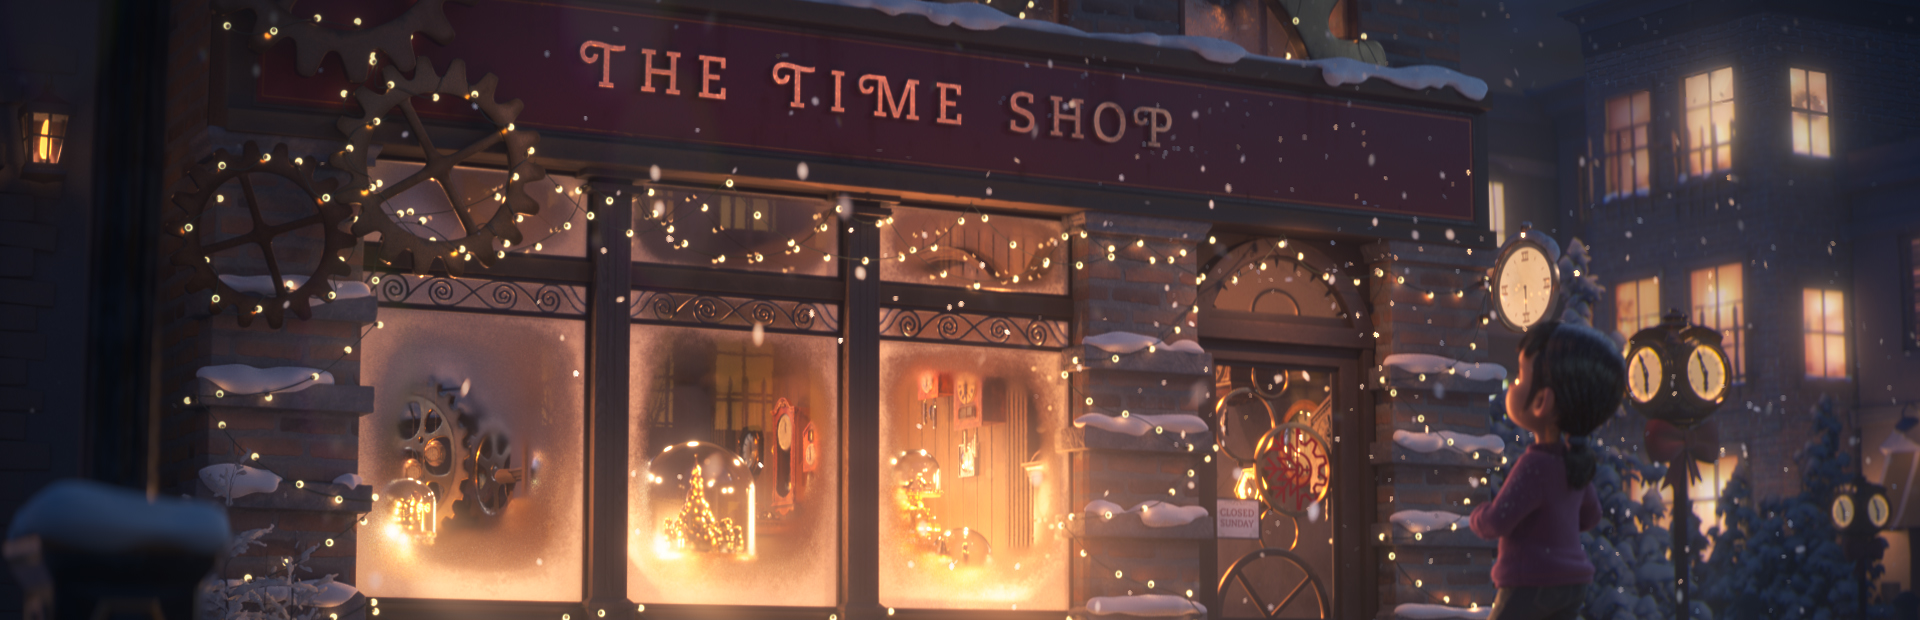 The Time Shop illustration of a kid looking into the shop on a winter night